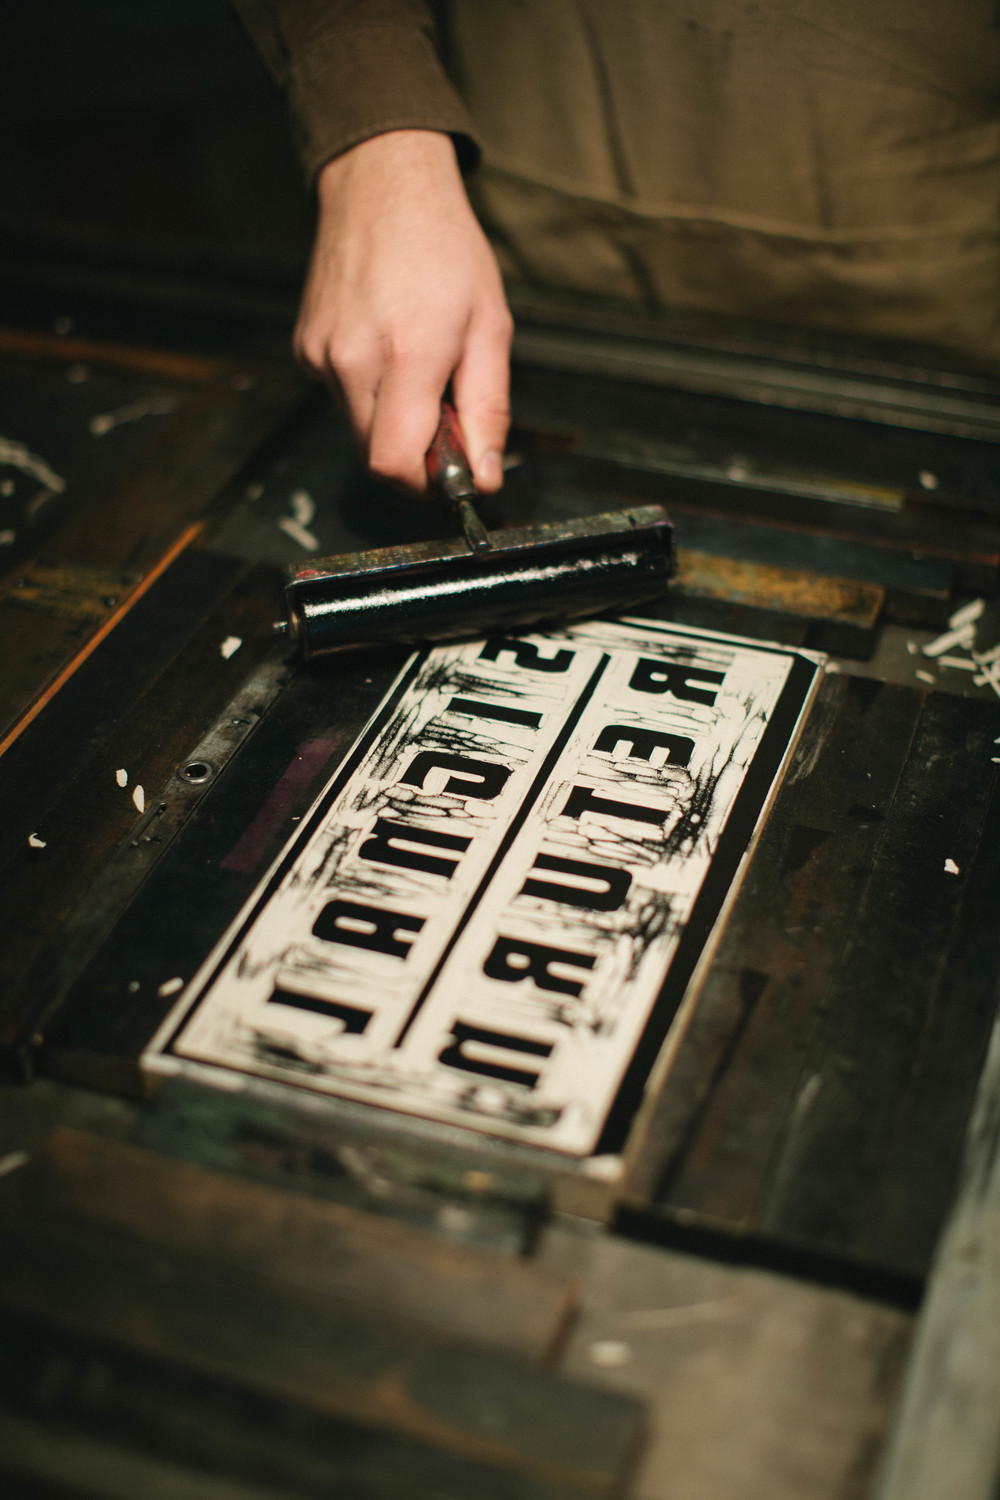 About signal return signal return focusing largely on the work of detroit based artists along work by michigan and national artists we also offer a selection of books about letterpress reheart Images